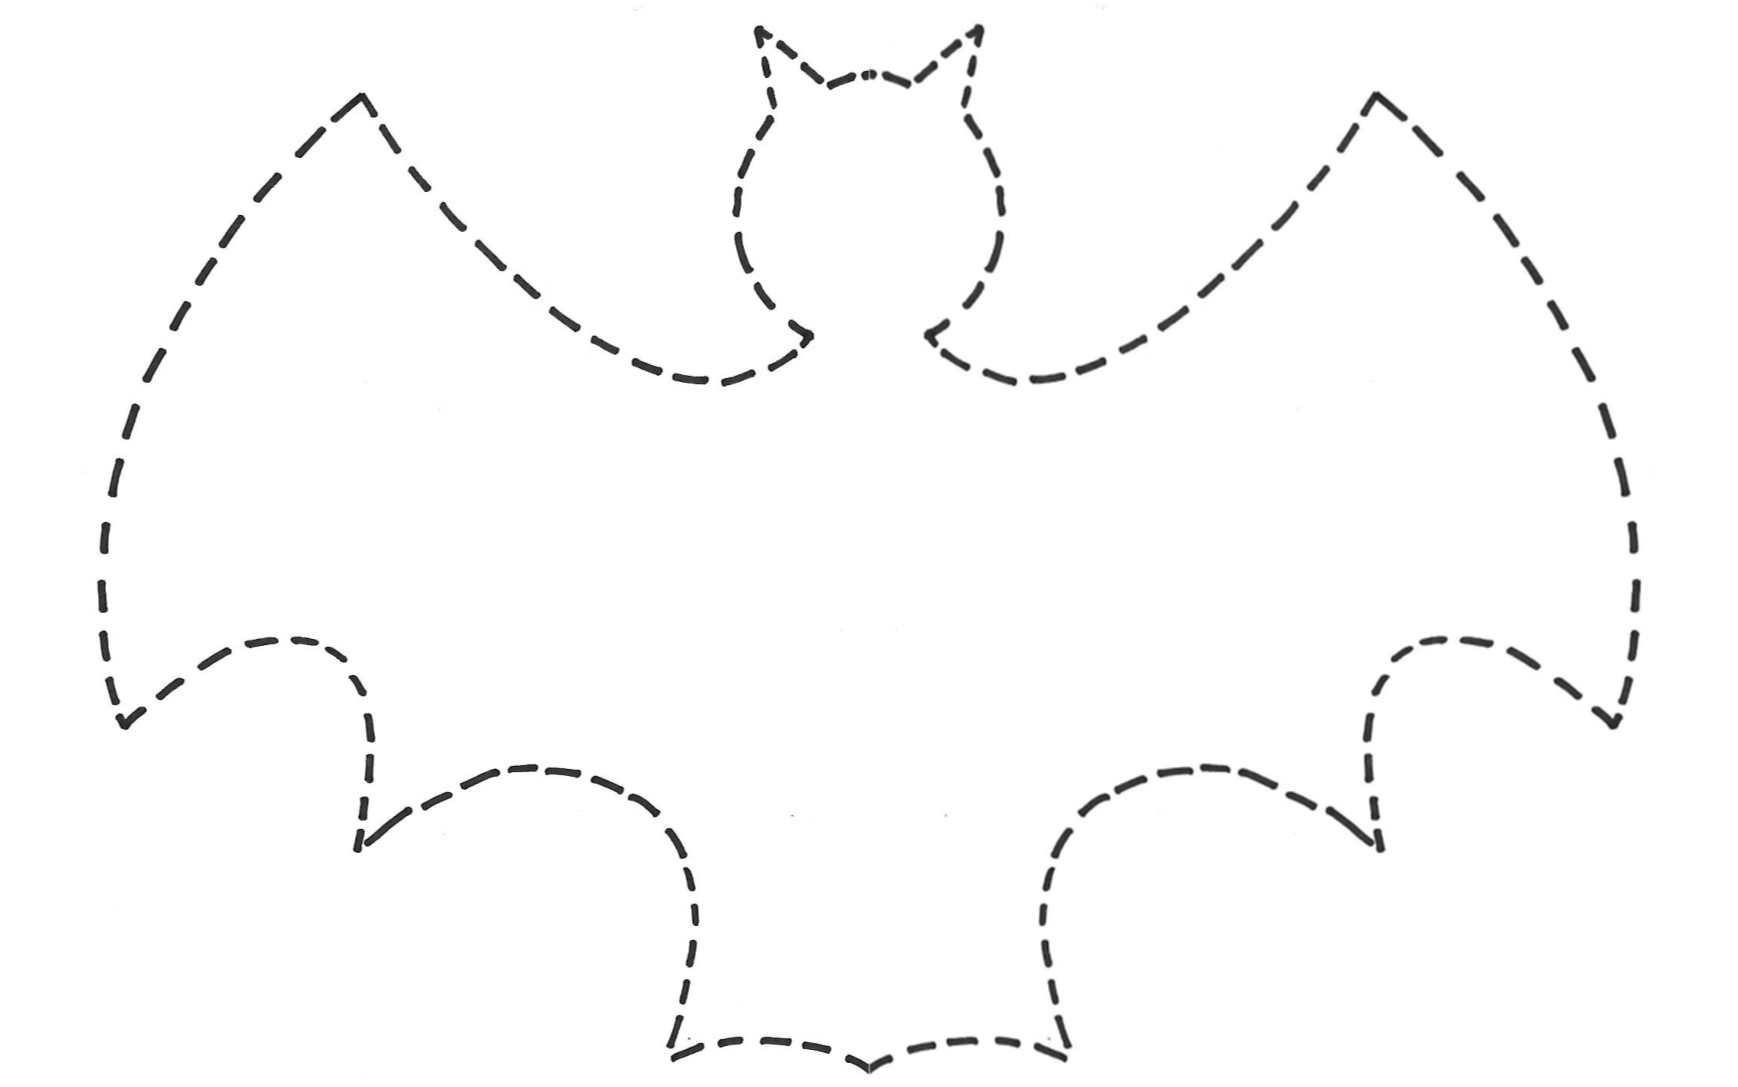 bat template 2 - Halloween Bat Decorations